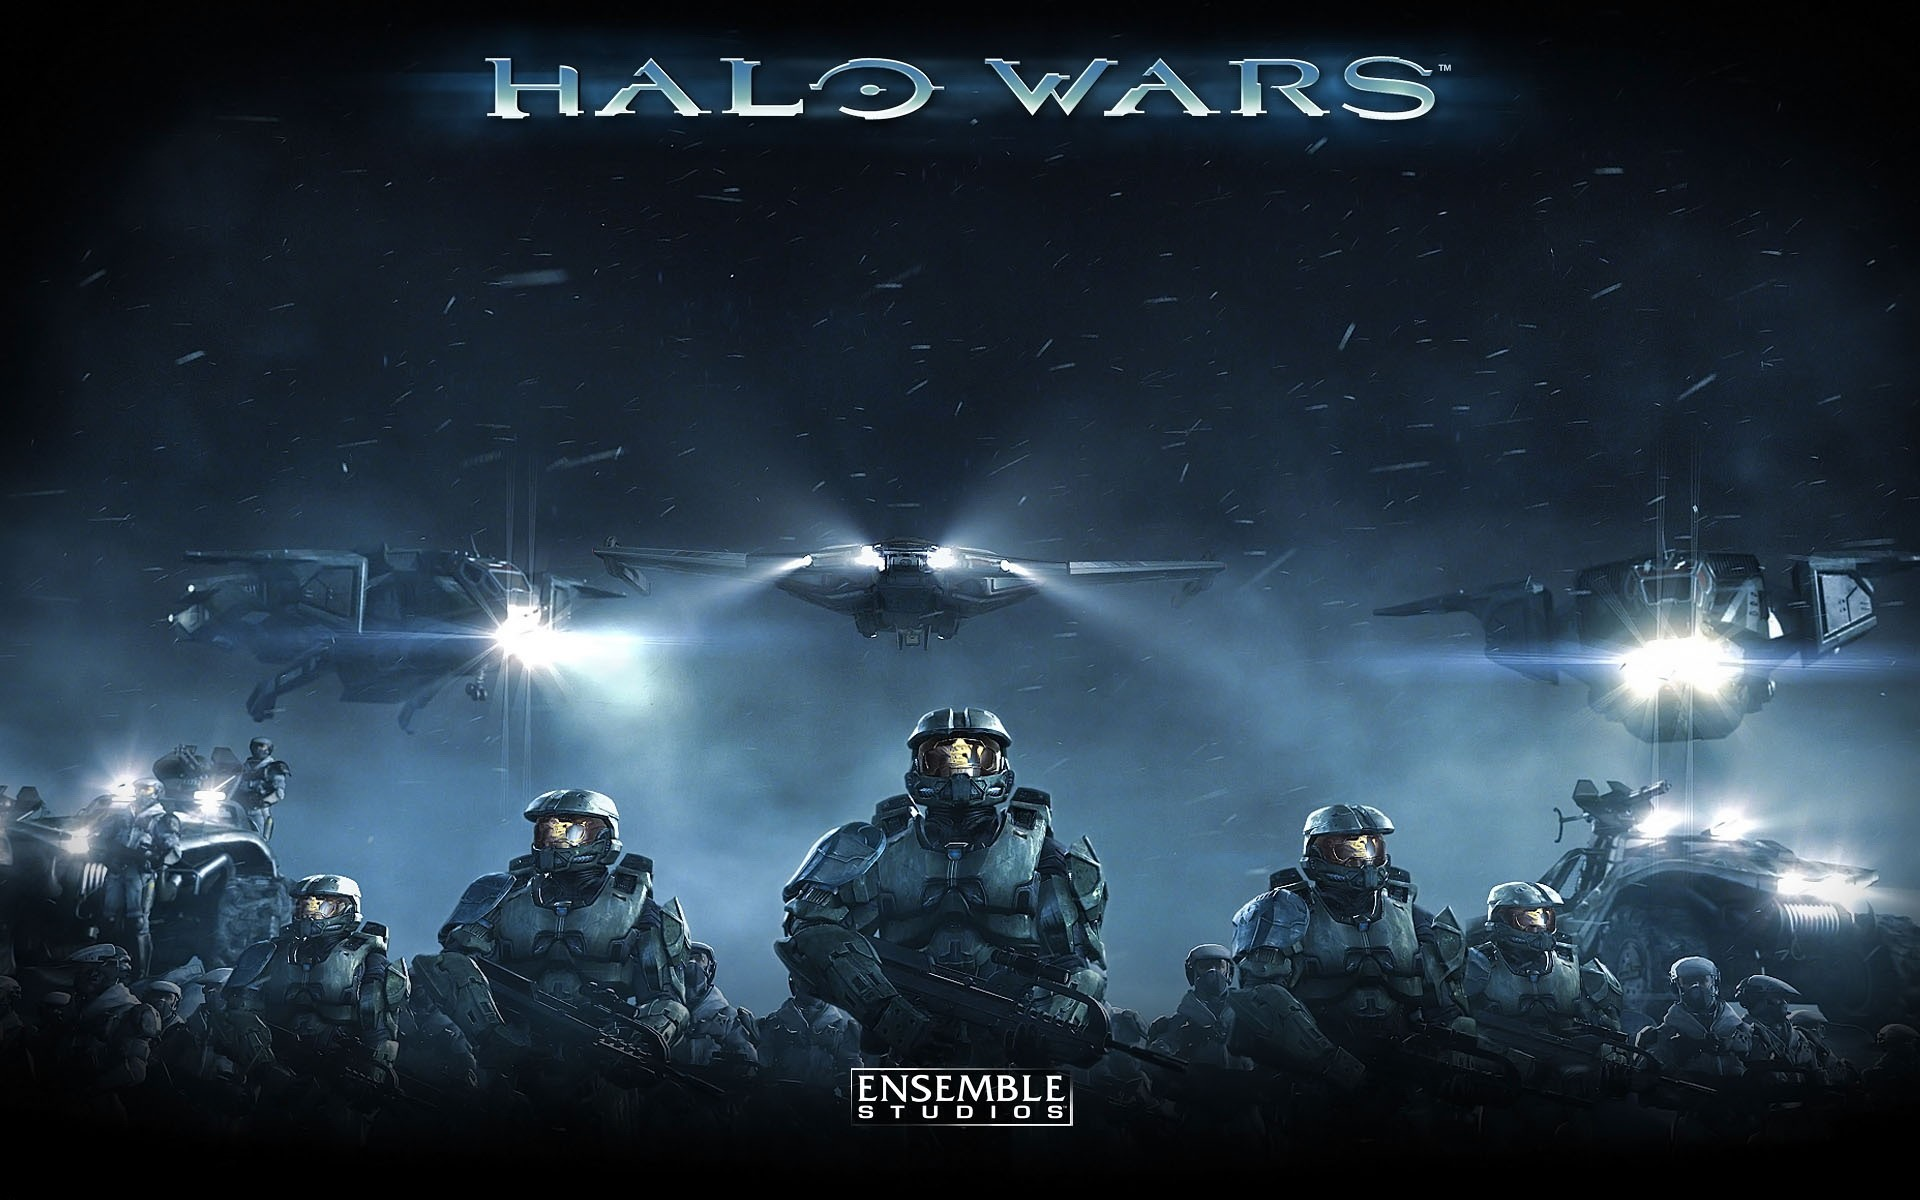 Ultra Hd Wallpapers Cars Halo Wars Game Wallpapers Hd Wallpapers Id 8082